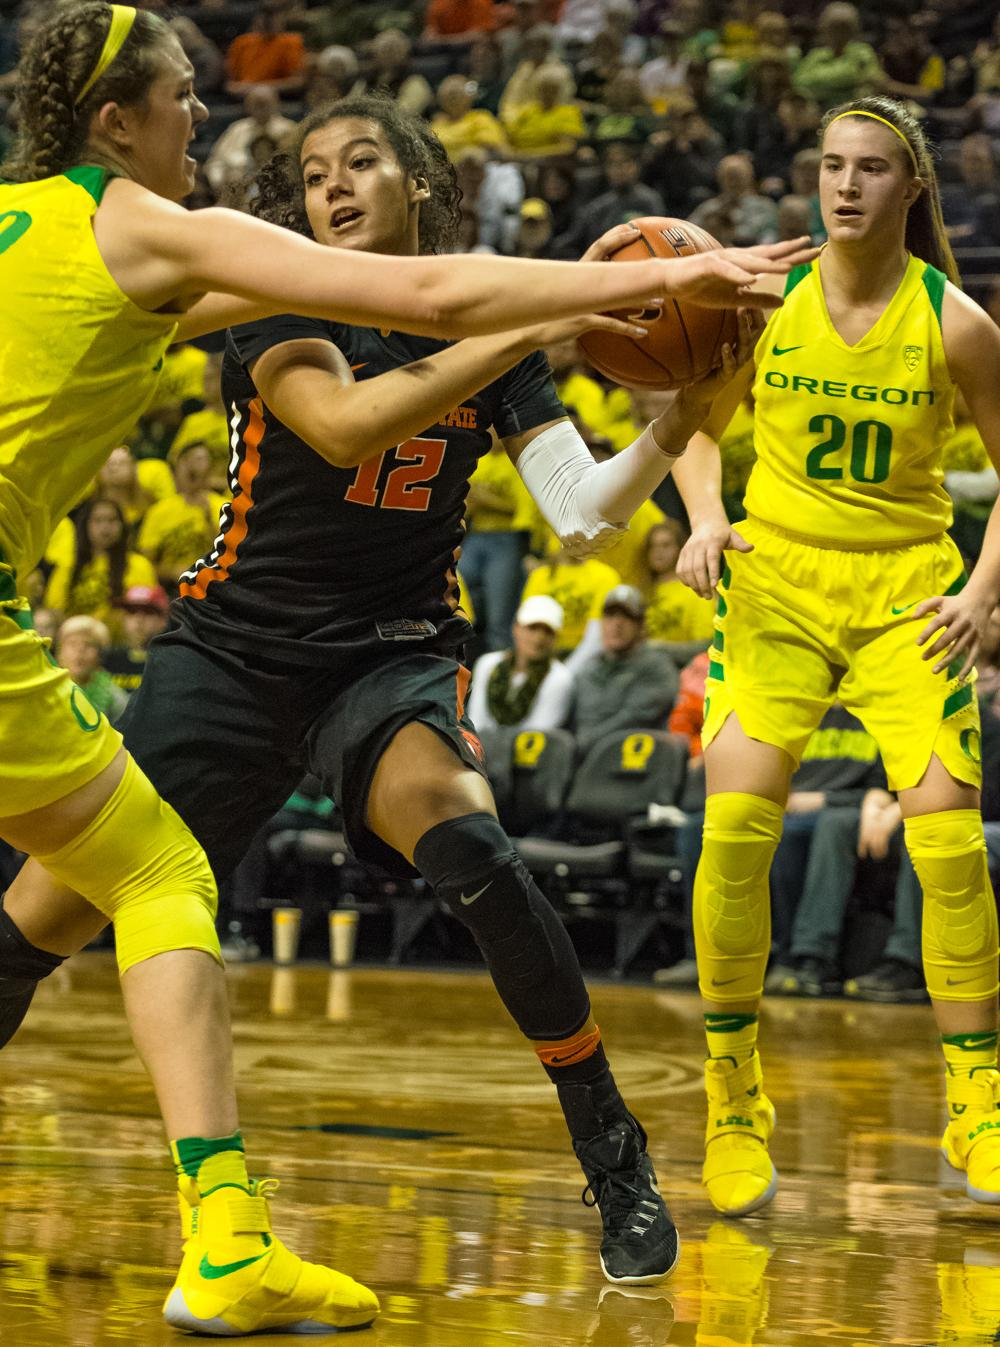 Oregon Ducks Forward Sierra Campisano (#52) defends against Oregon State Forward Kolbie Orum (#12) to stop the easy pass. Oregon Ducks lost 40-43 to Oregon State Beavers in a tightly matched fourth quarter. Photo by Jonathan Booker, Oregon News Lab